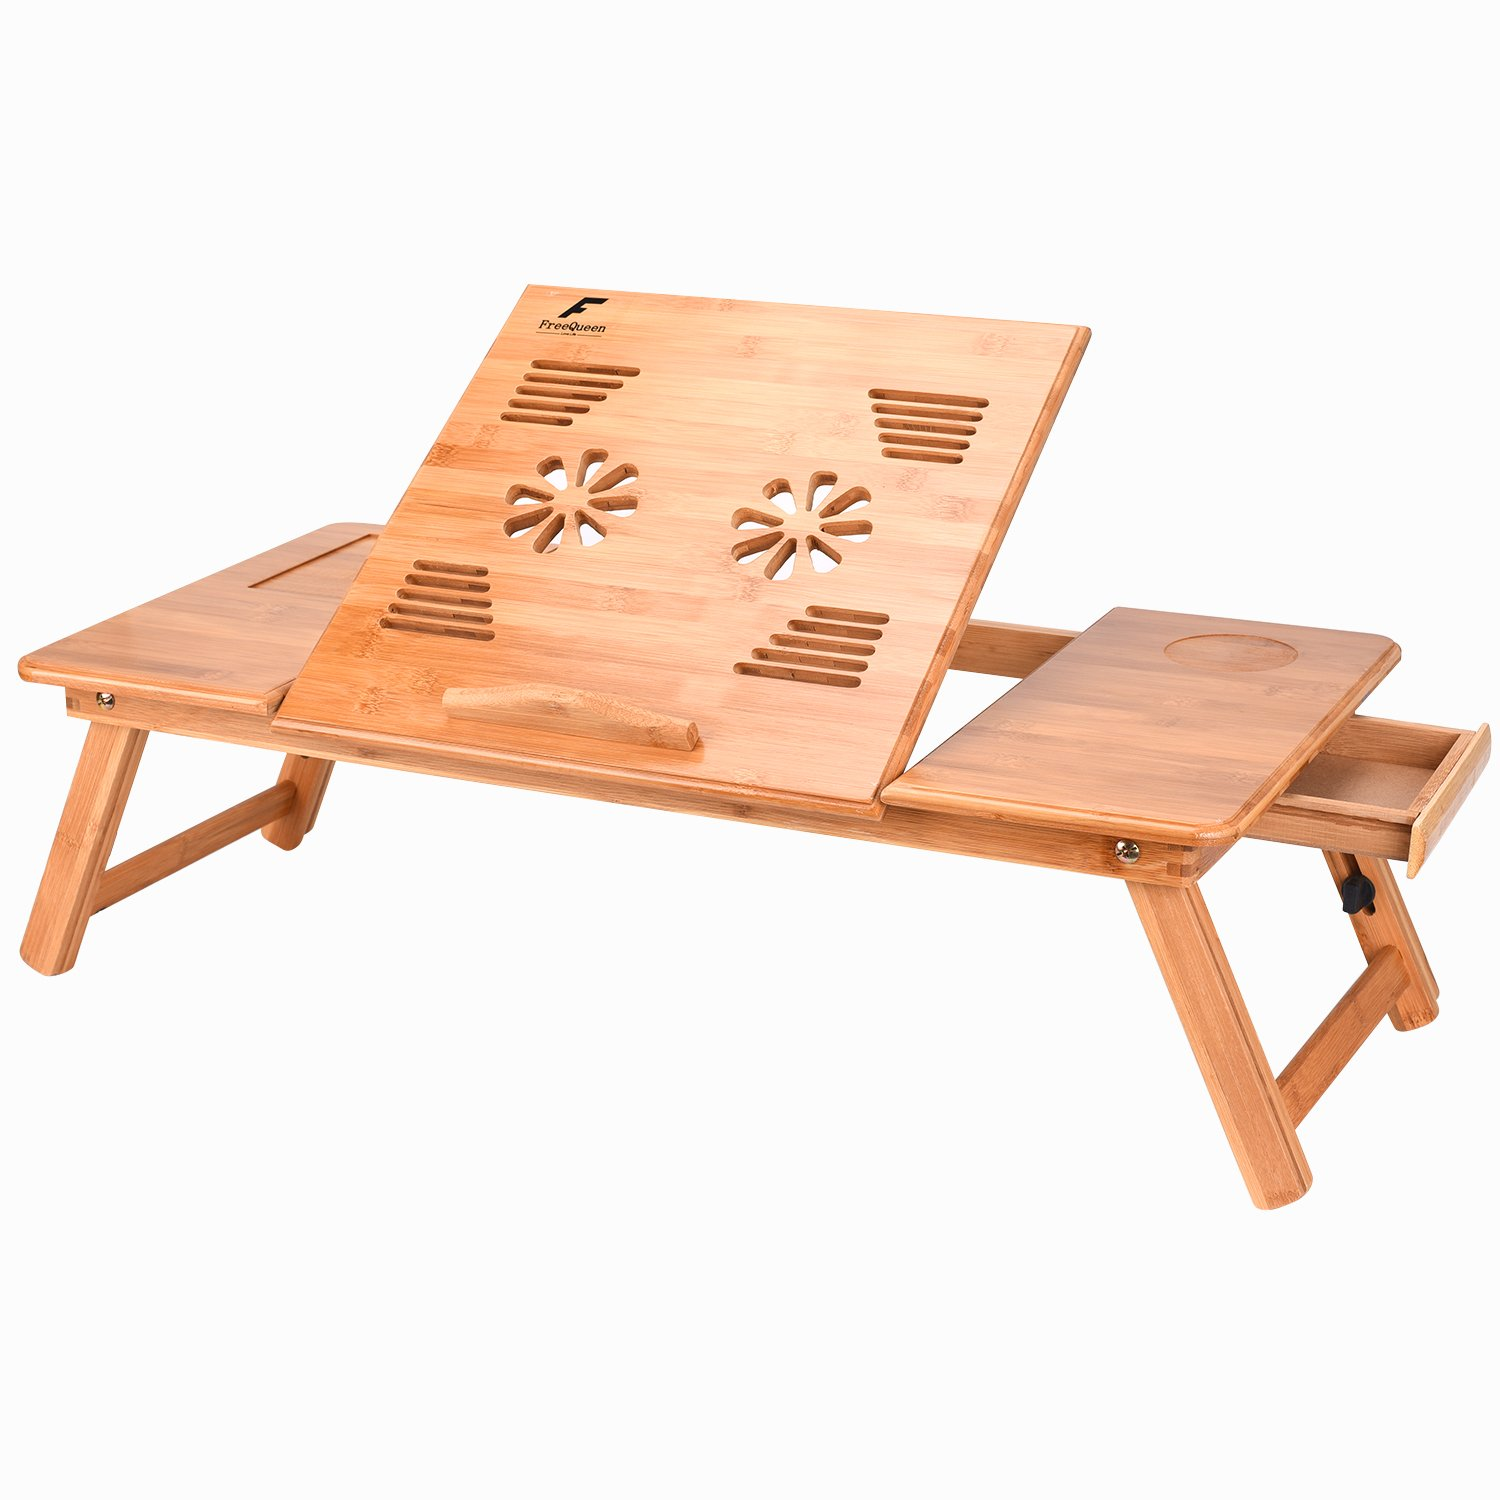 FreeQueen Lengthened Bamboo Laptop Desk Wood Tray Multi-use Breakfast Table Serving Bed Tray Book Stand with Adjustable Tilting Drawers